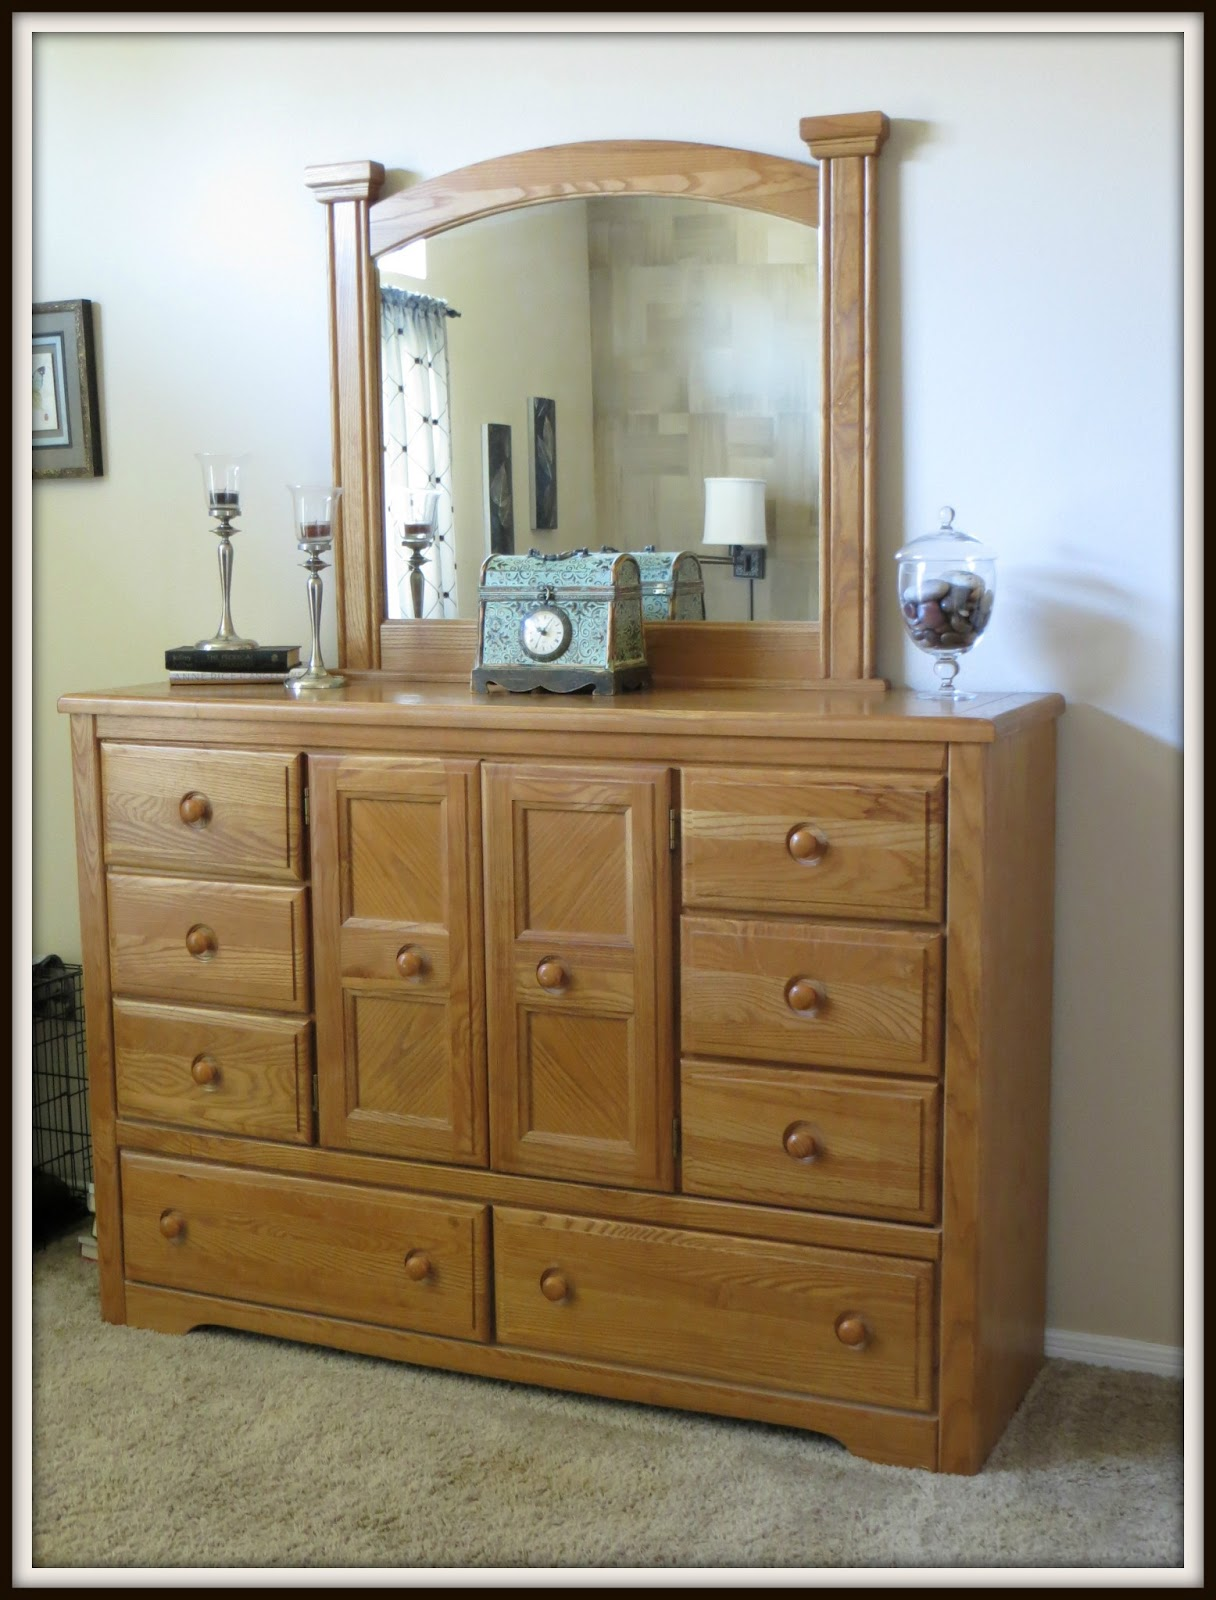 Crafty In Crosby: Bedroom Furniture Makeover